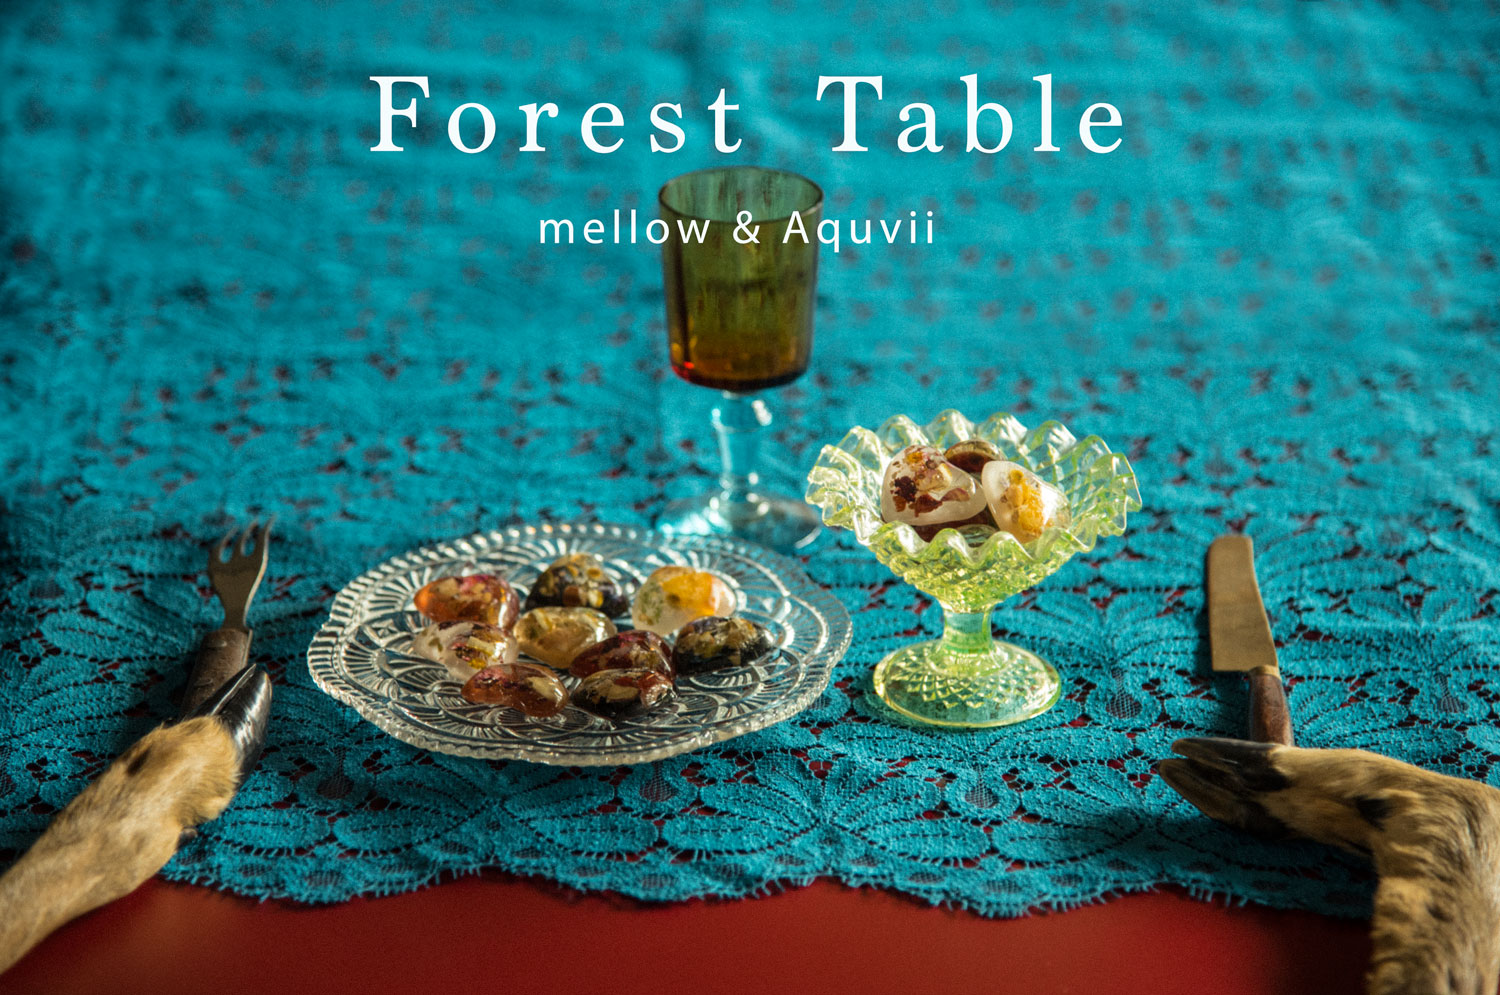 【 Forest Table 】mellow×Aquvii 1日限りの食堂に参加